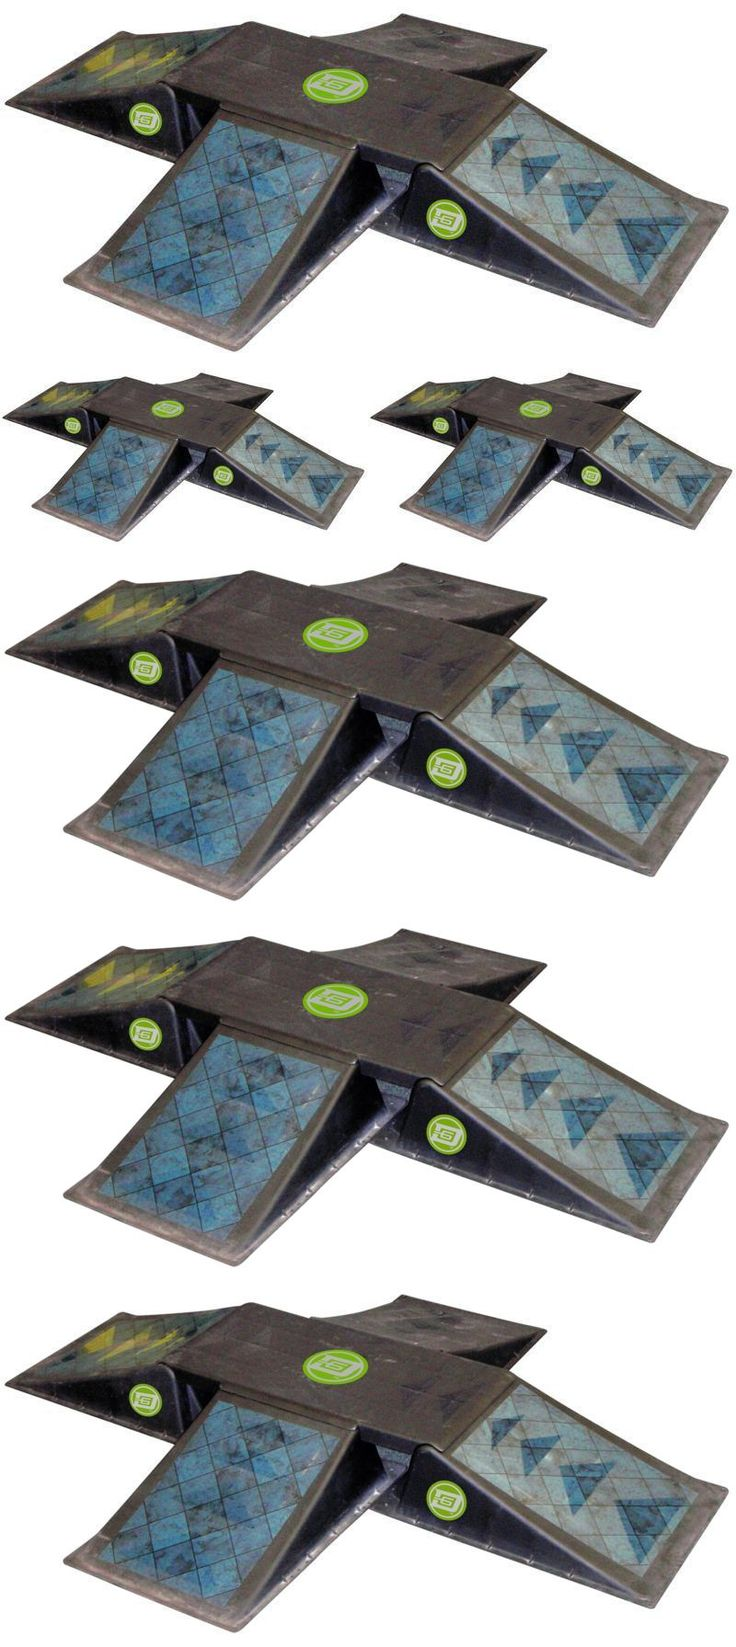 Ramps and Rails 91565: Amazing And Fun D6 Sports Quad Ramp With Fun Box New -> BUY IT NOW ONLY: $134.99 on eBay!